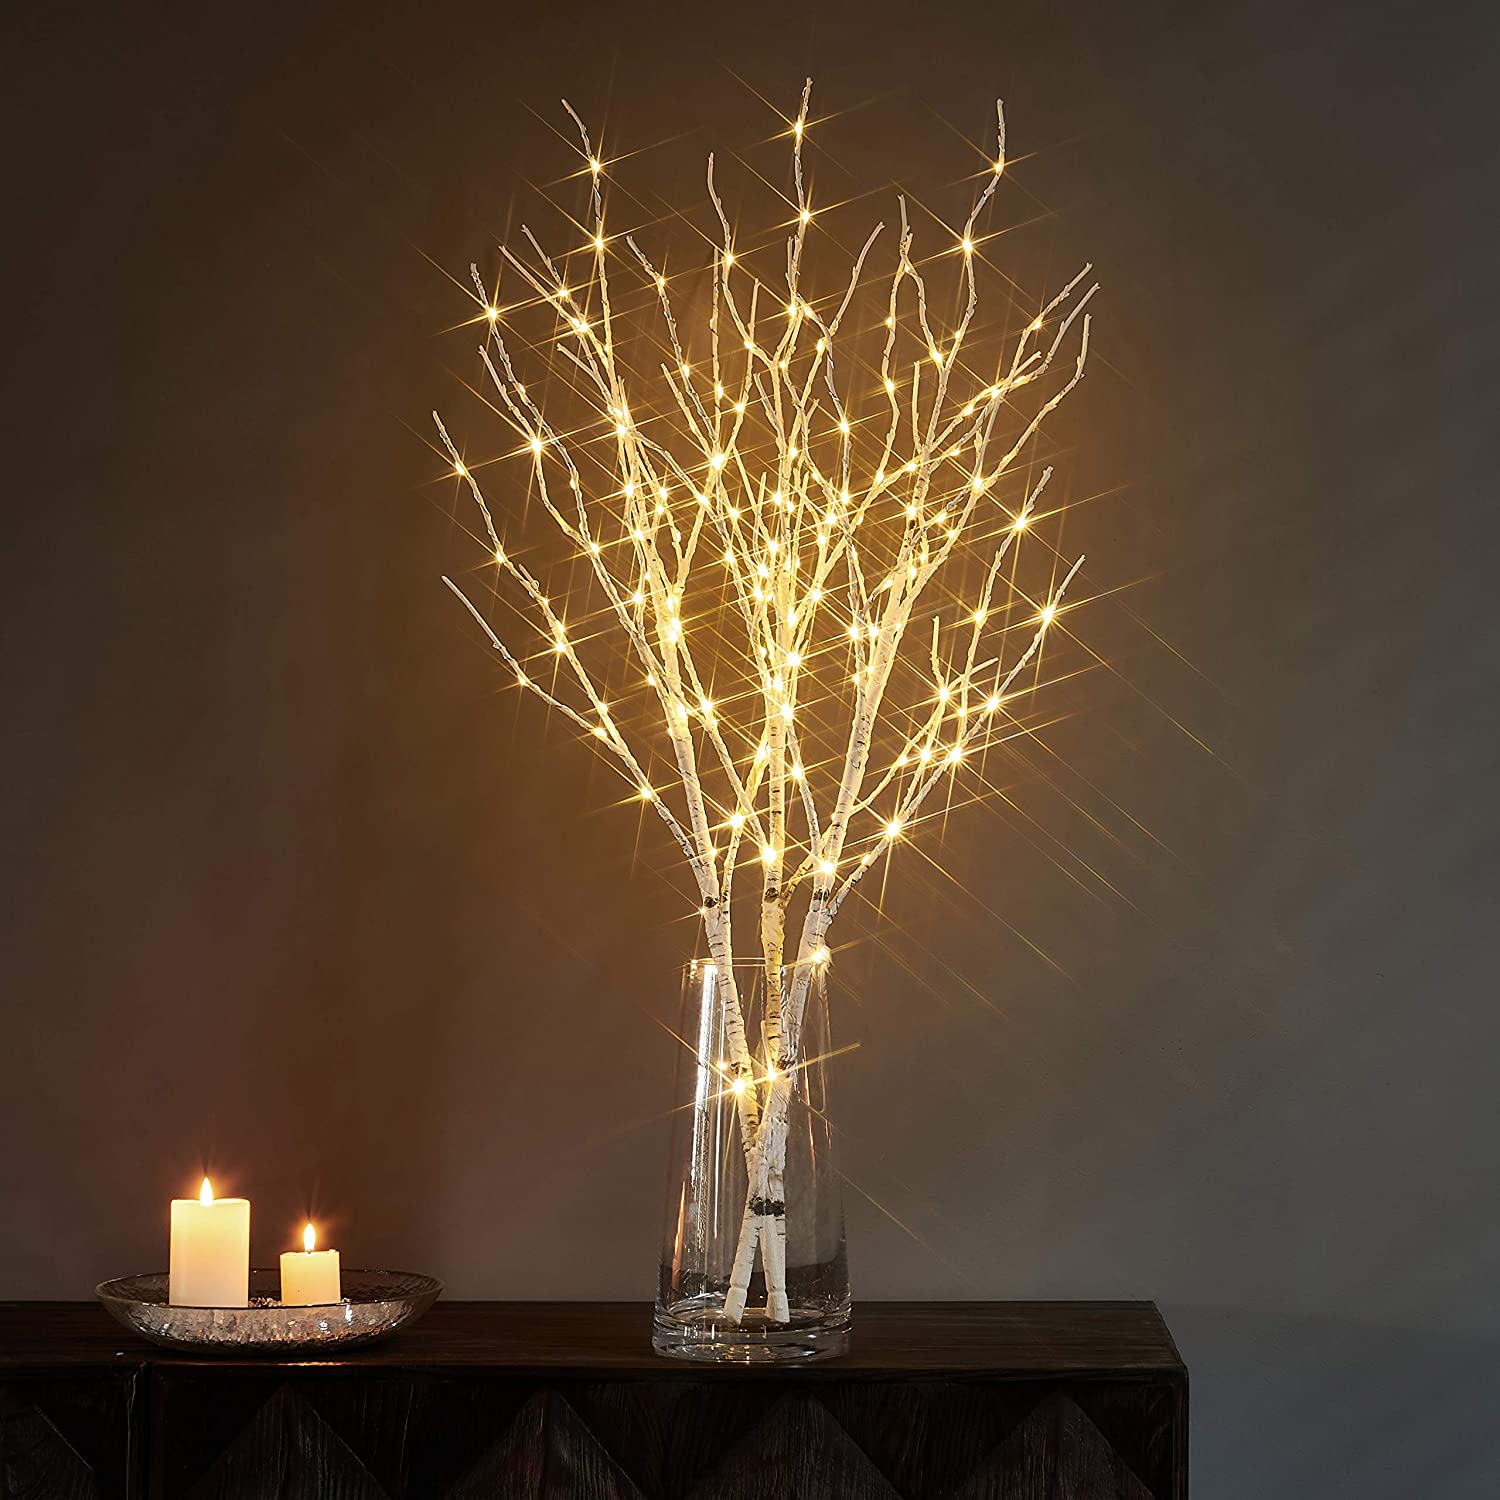 Litbloom Lighted Twig Branches With Timer And Dimmer Tree Branch With Warm White Lights For Christmas Holiday And Party Decoration 32in 150 Led Waterproof Plug In Kitchen Dining